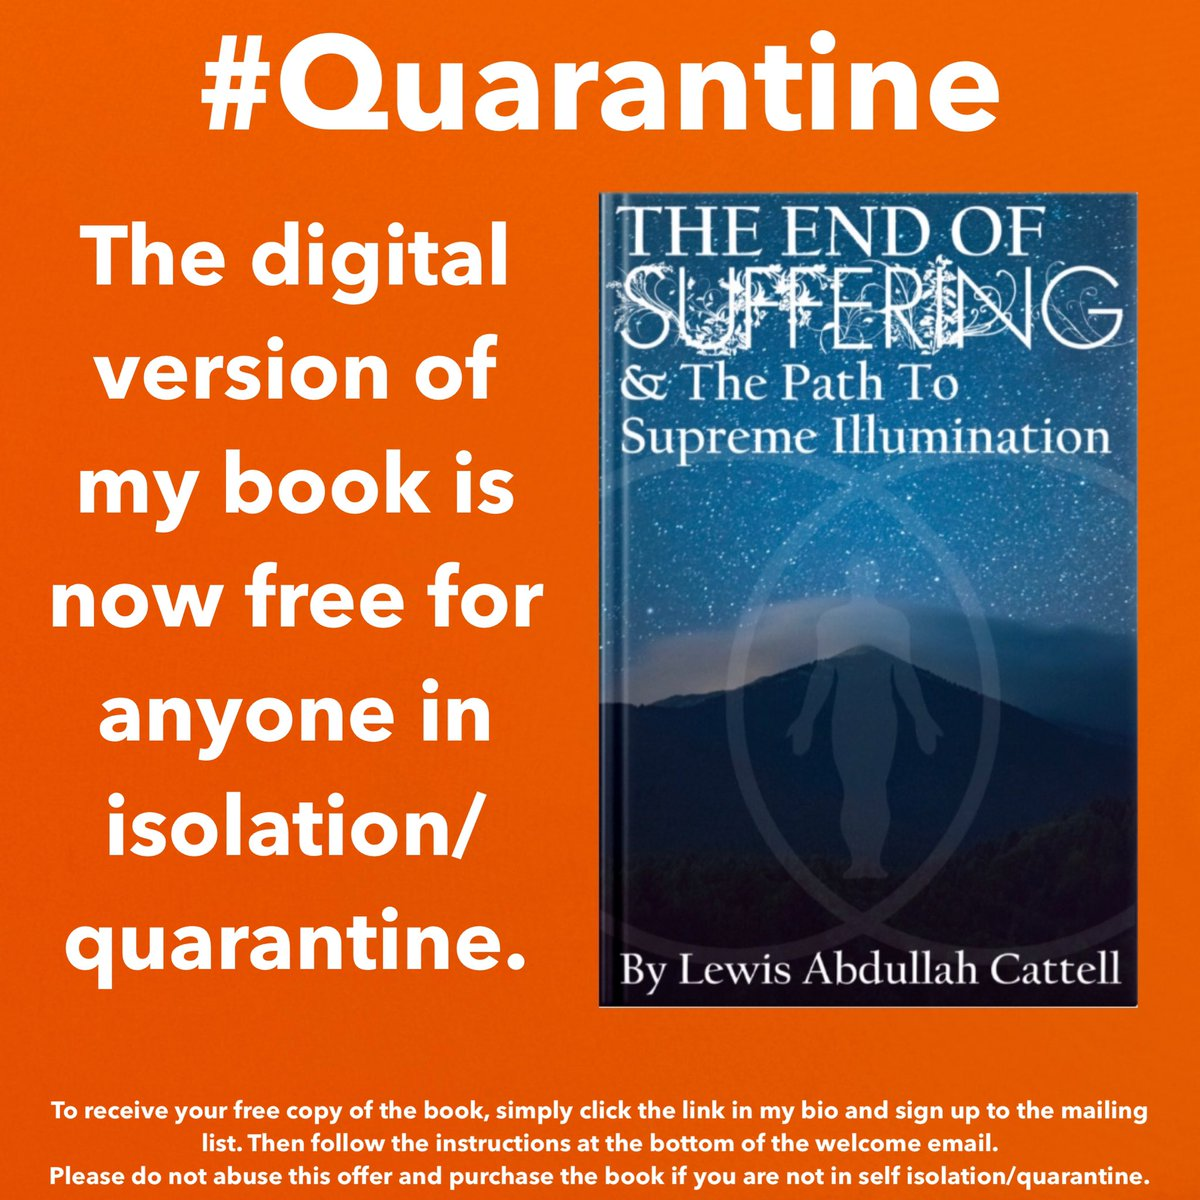 @zen_yeona02 You can read my book for free if you are in quarantine (link in bio)